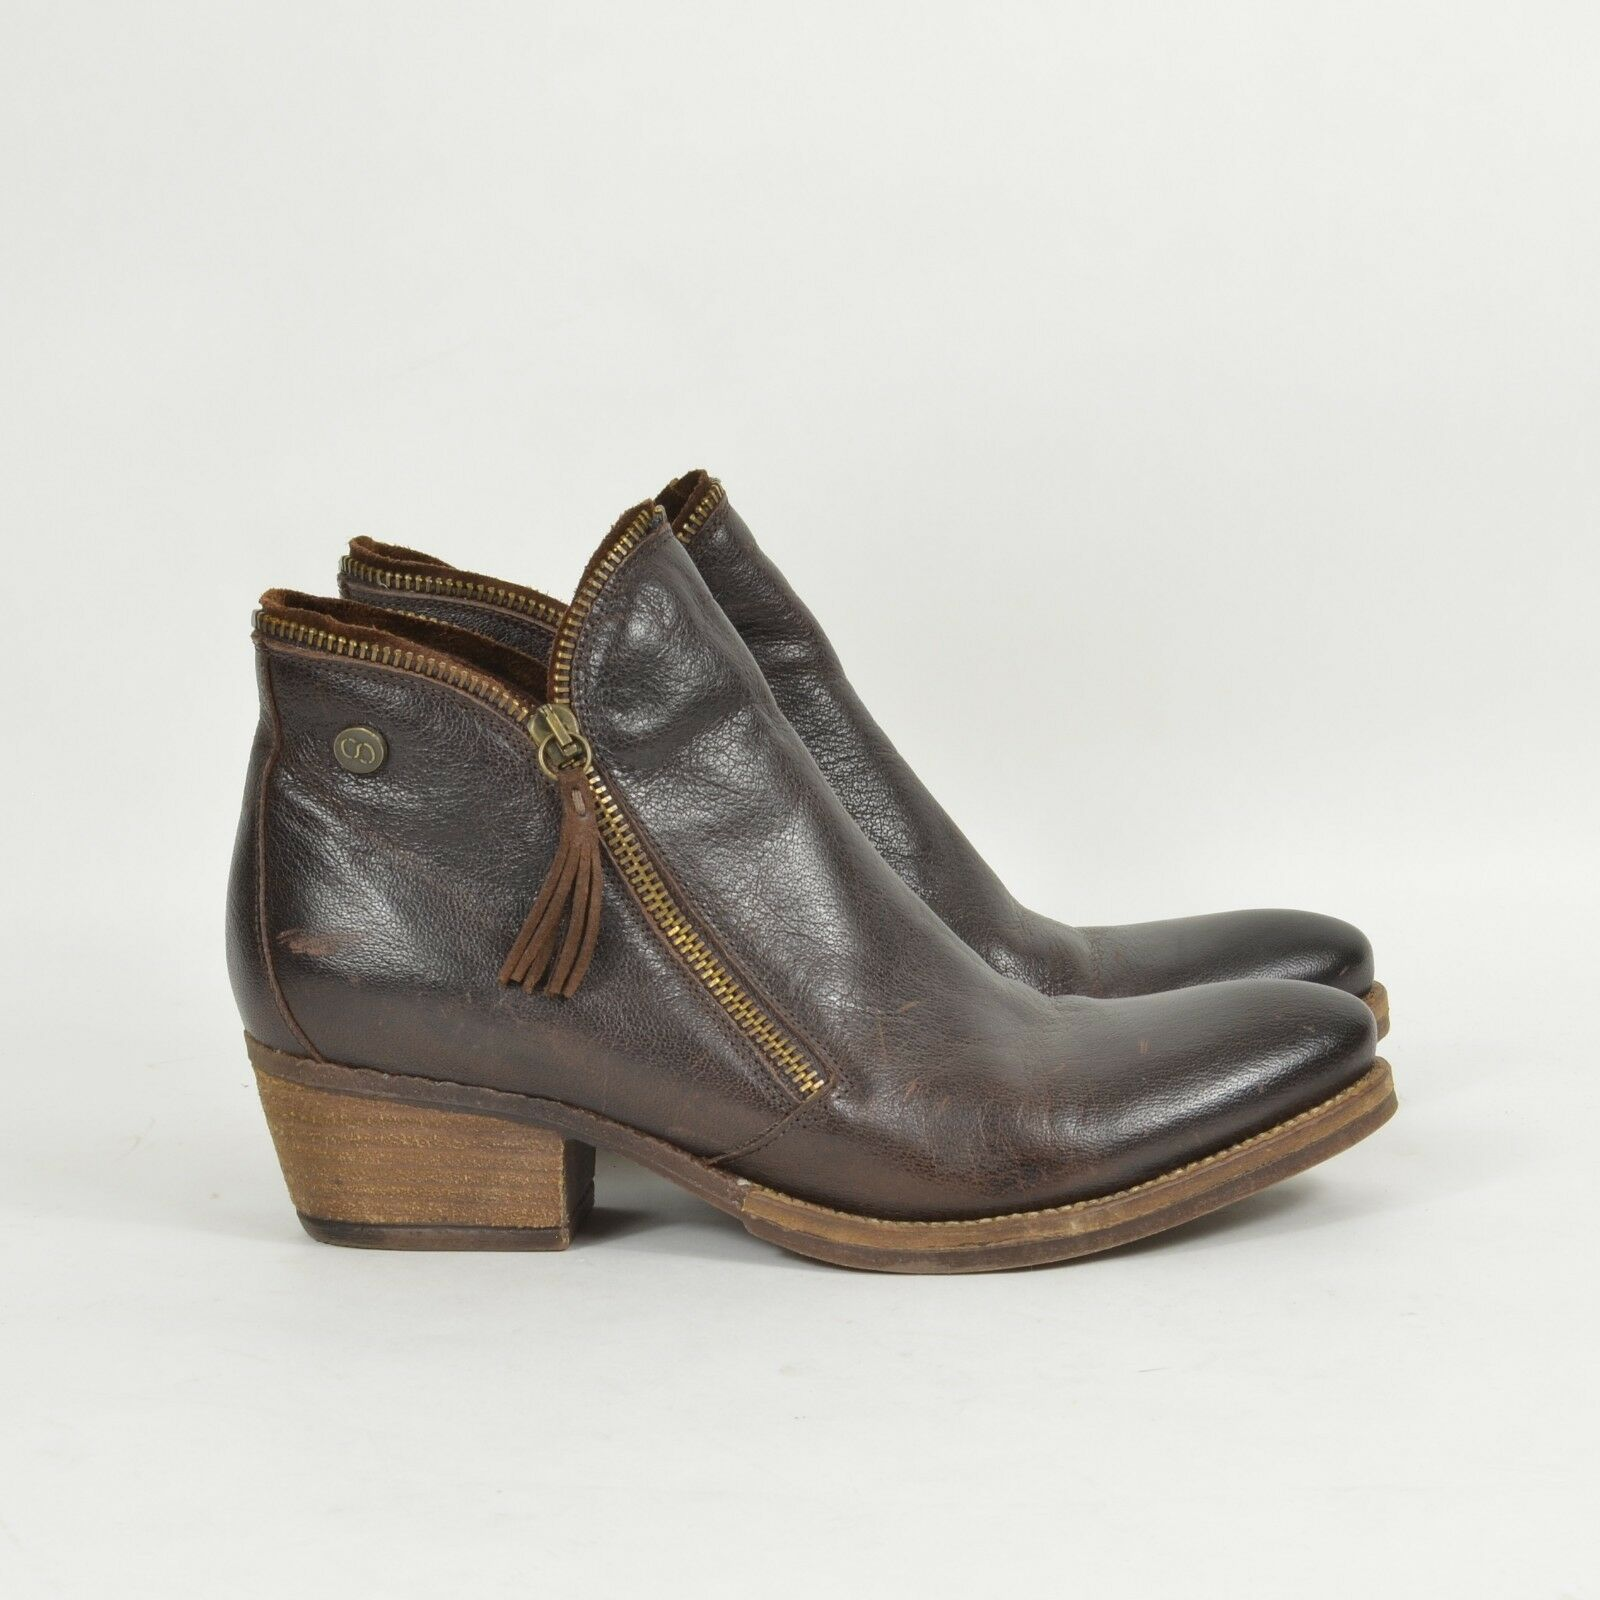 COQUE TERRA Coqueterra Lizzy Leather Zipper ANKLE BOOTS 39 Brown